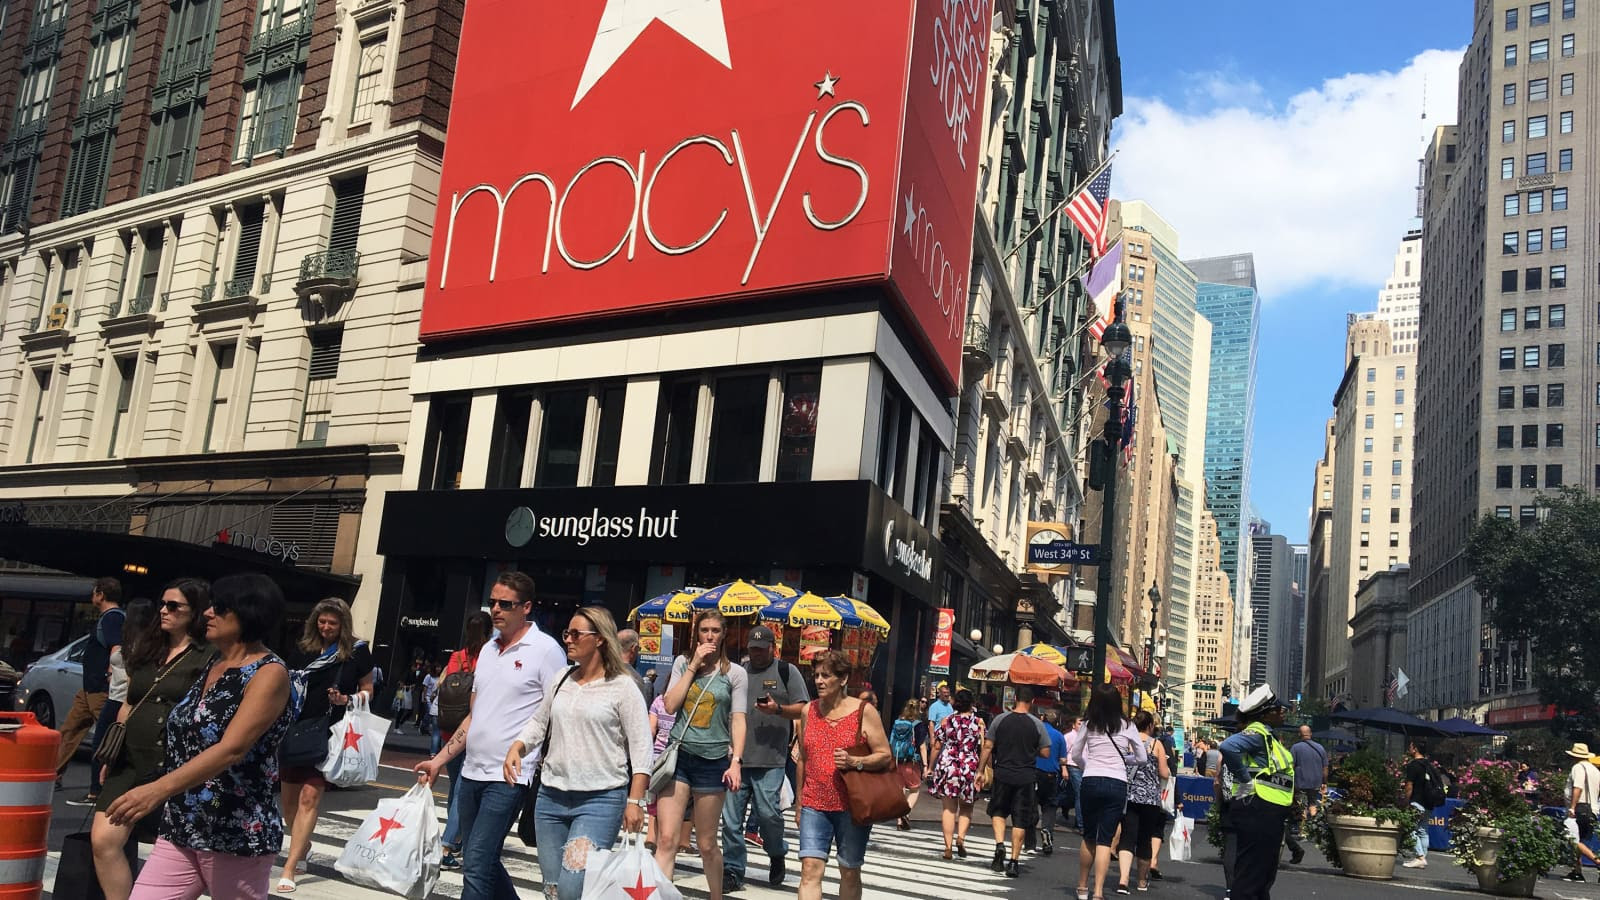 Activist investor Jana Partners takes stake in Macy's, urges spin-off of digital biz